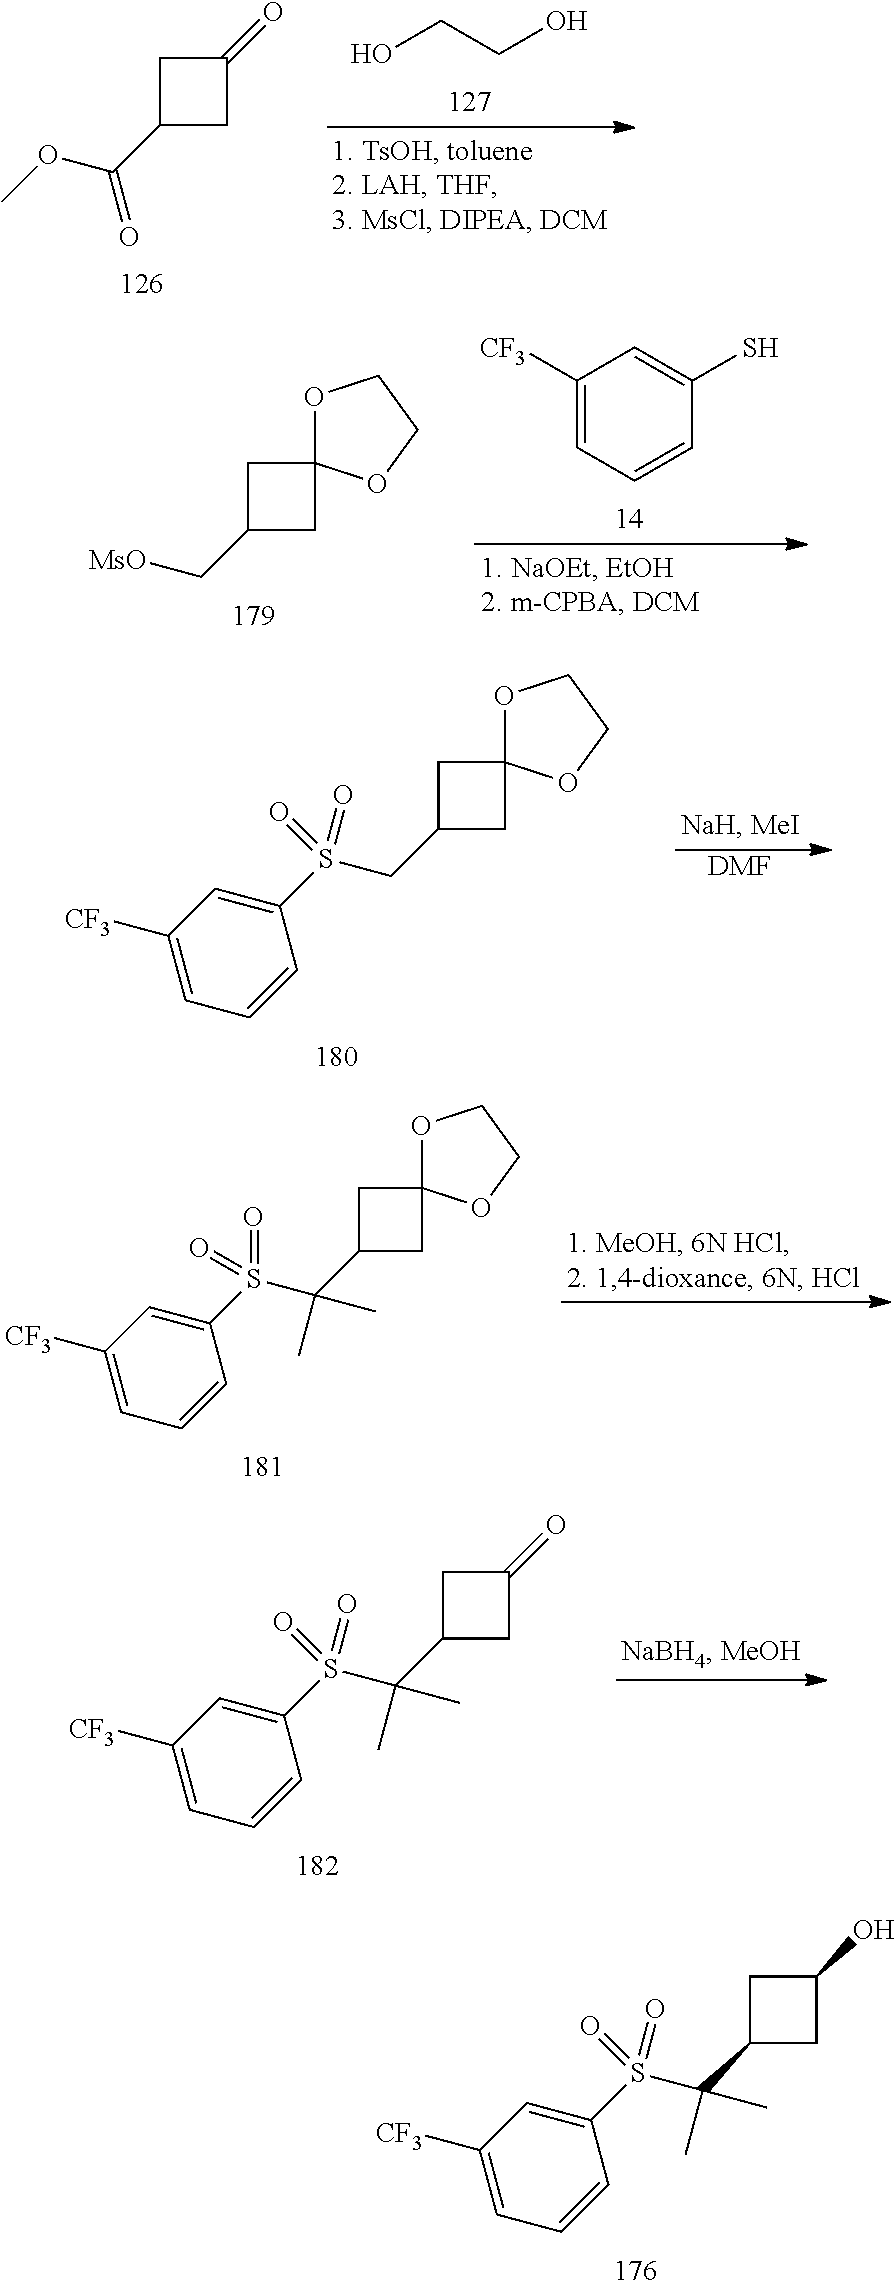 Us20120245137a1 Aryl Sulphone Derivatives As Calcium Channel Seal Skeleton Labeled See Diagram 9230 Figure 20120927 C00071